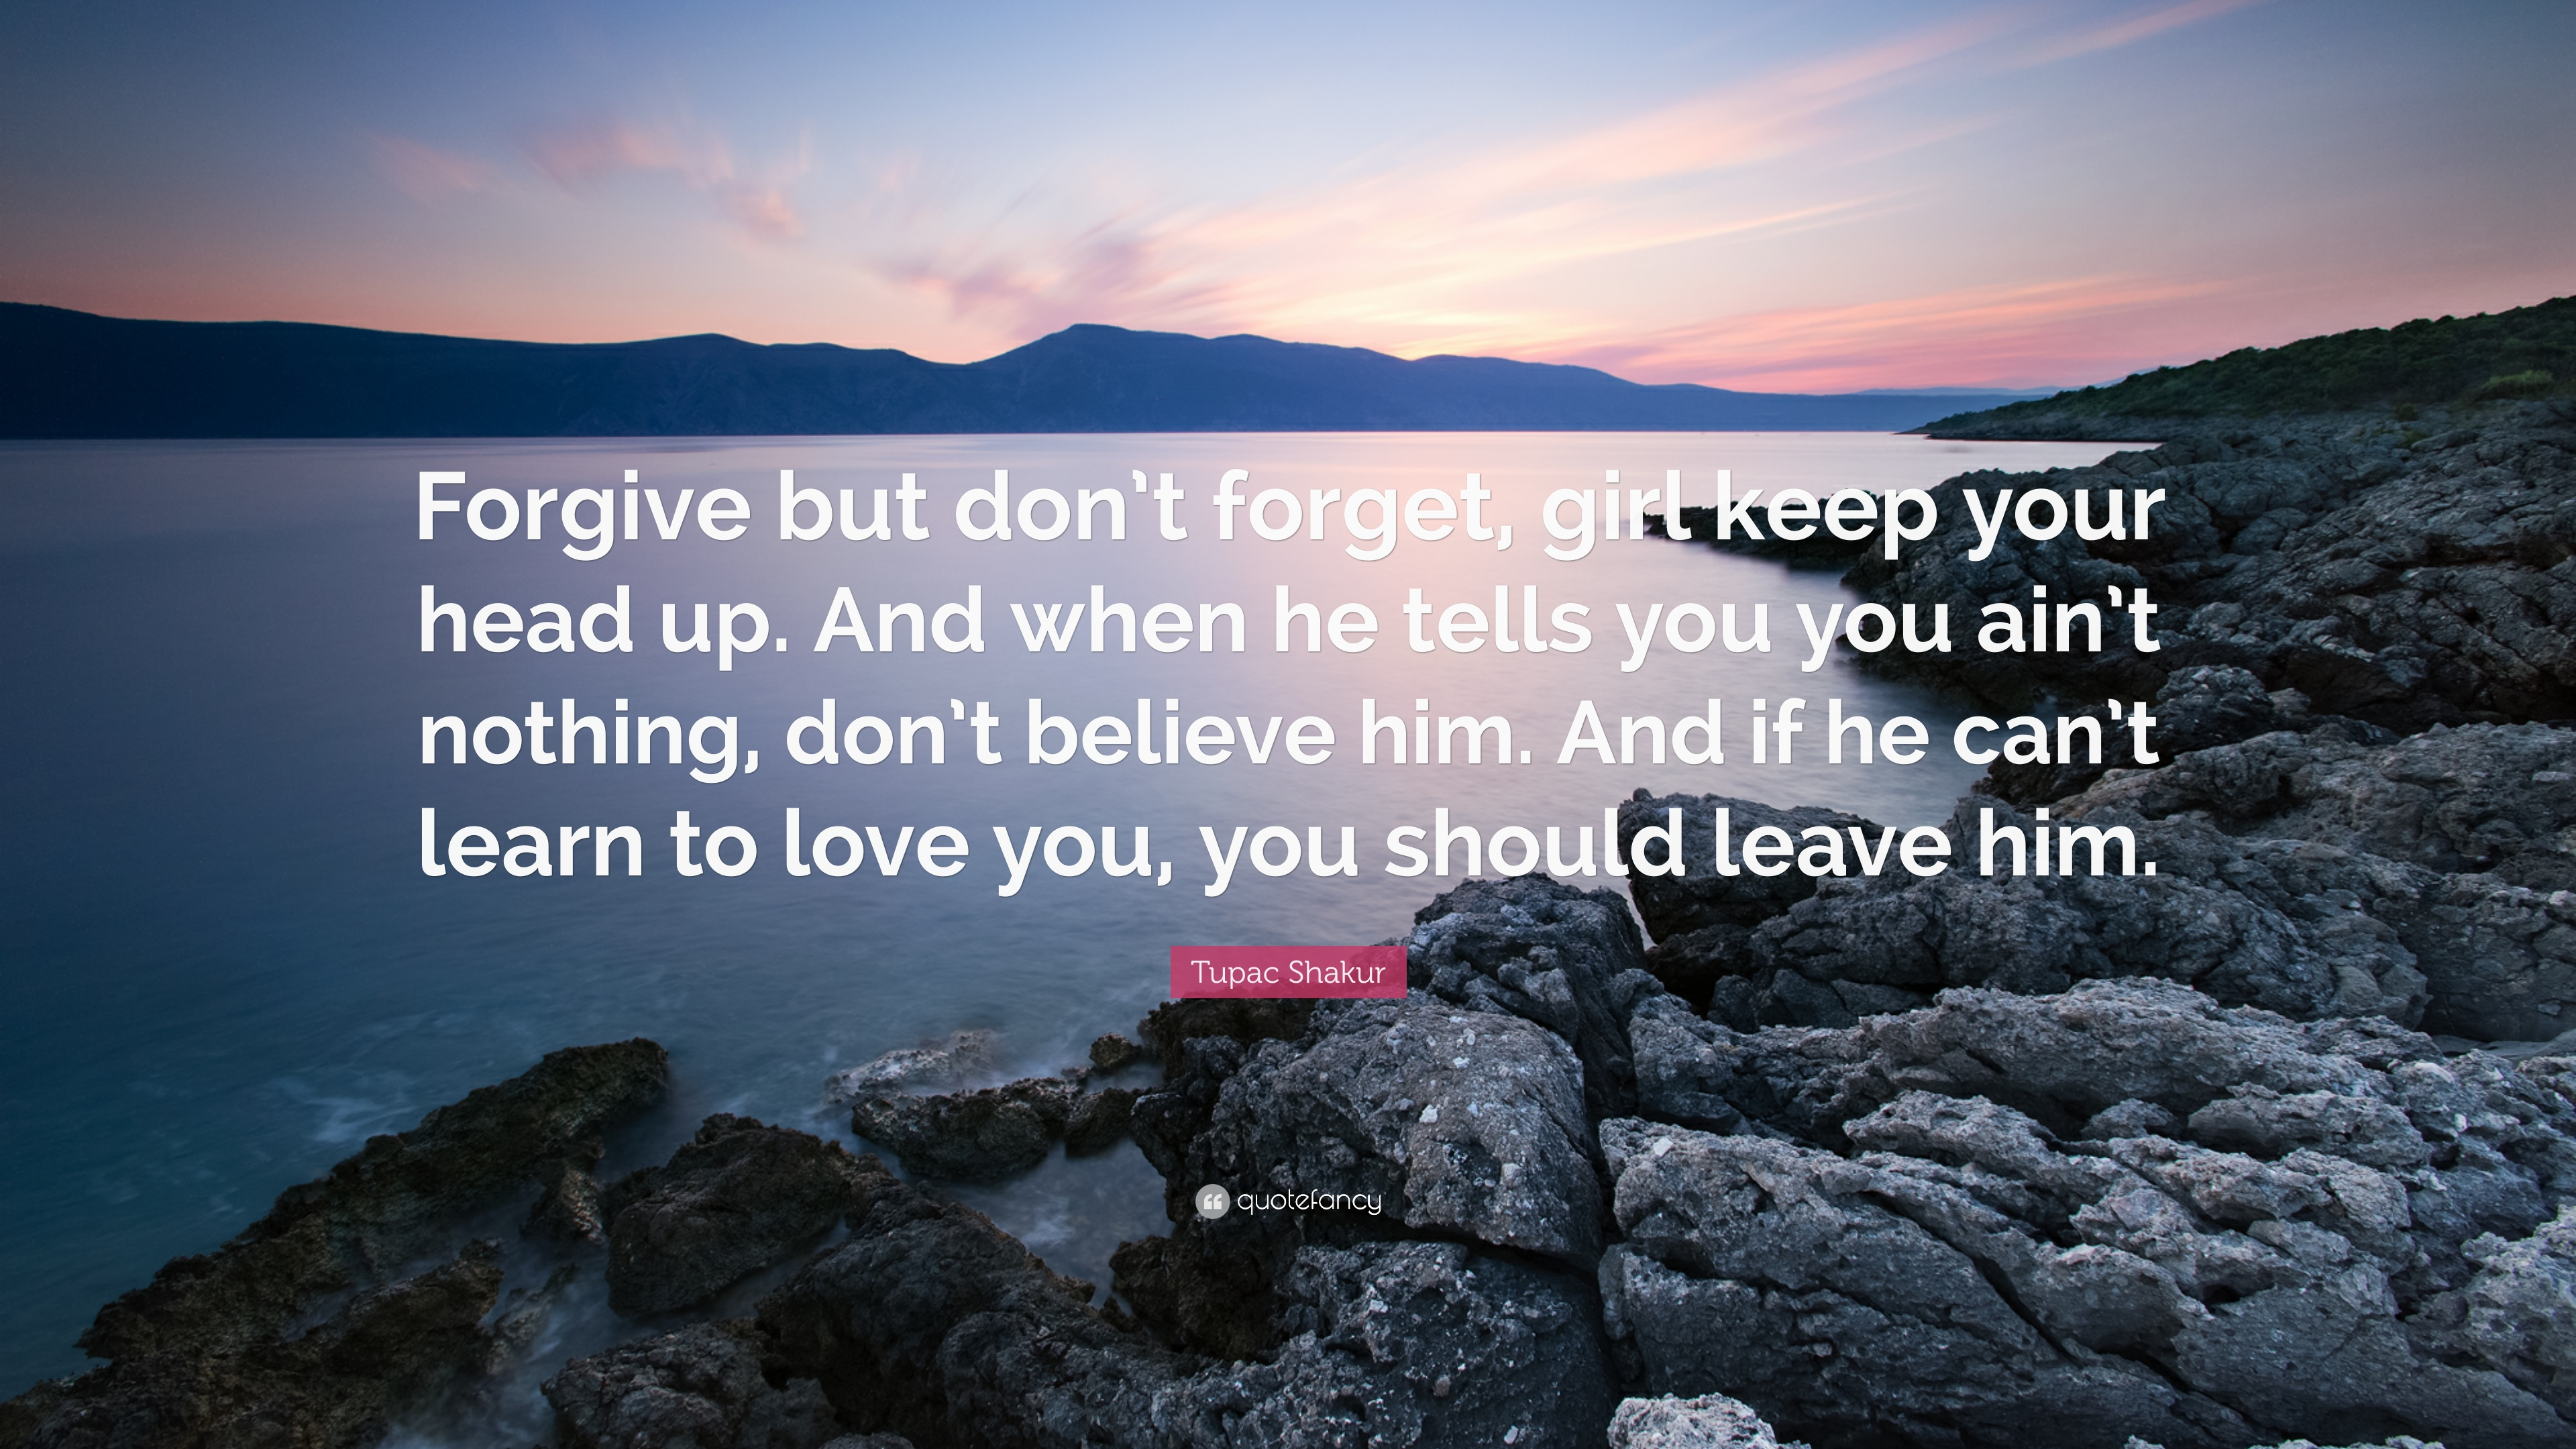 Tupac Shakur Quote Forgive But Dont Forget Girl Keep Your Head